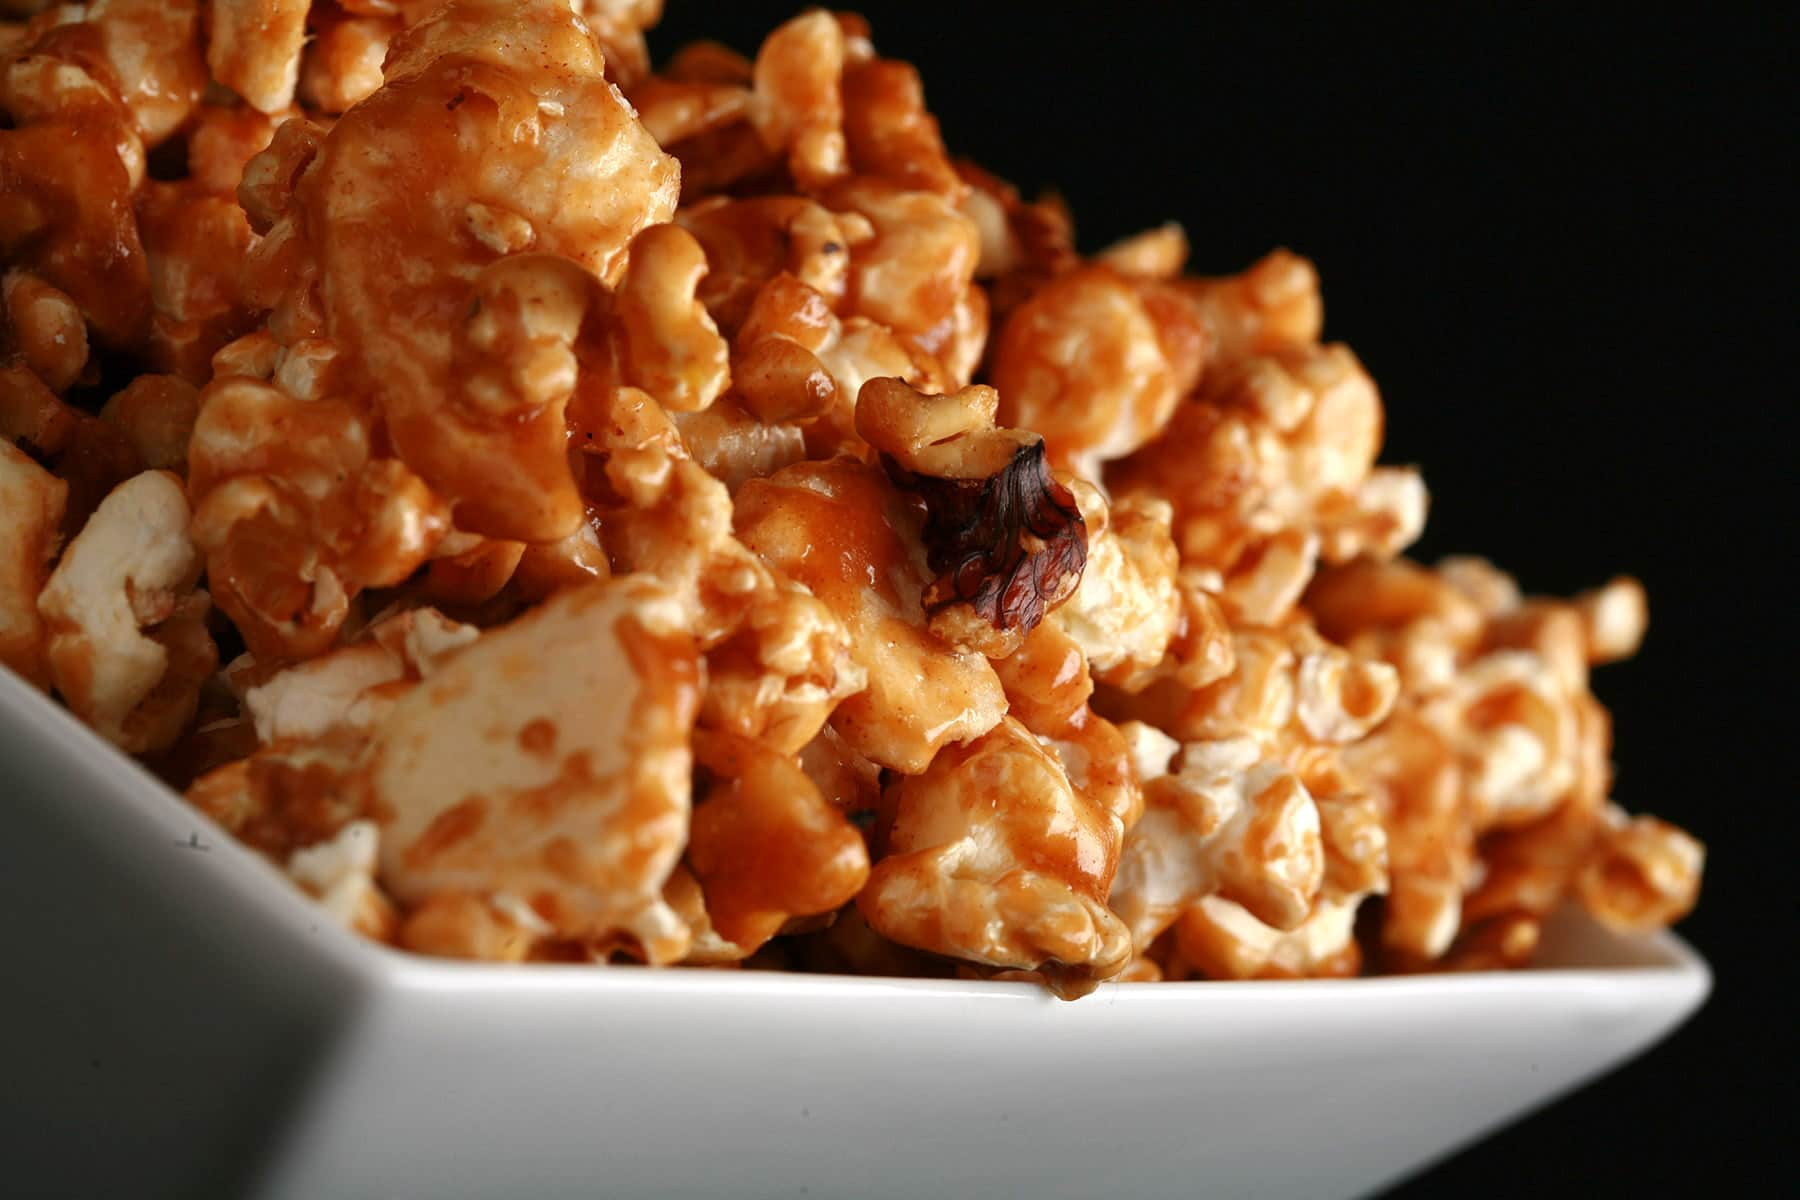 A close up view of a bowl of caramel popcorn with dried apples and cinnamon.